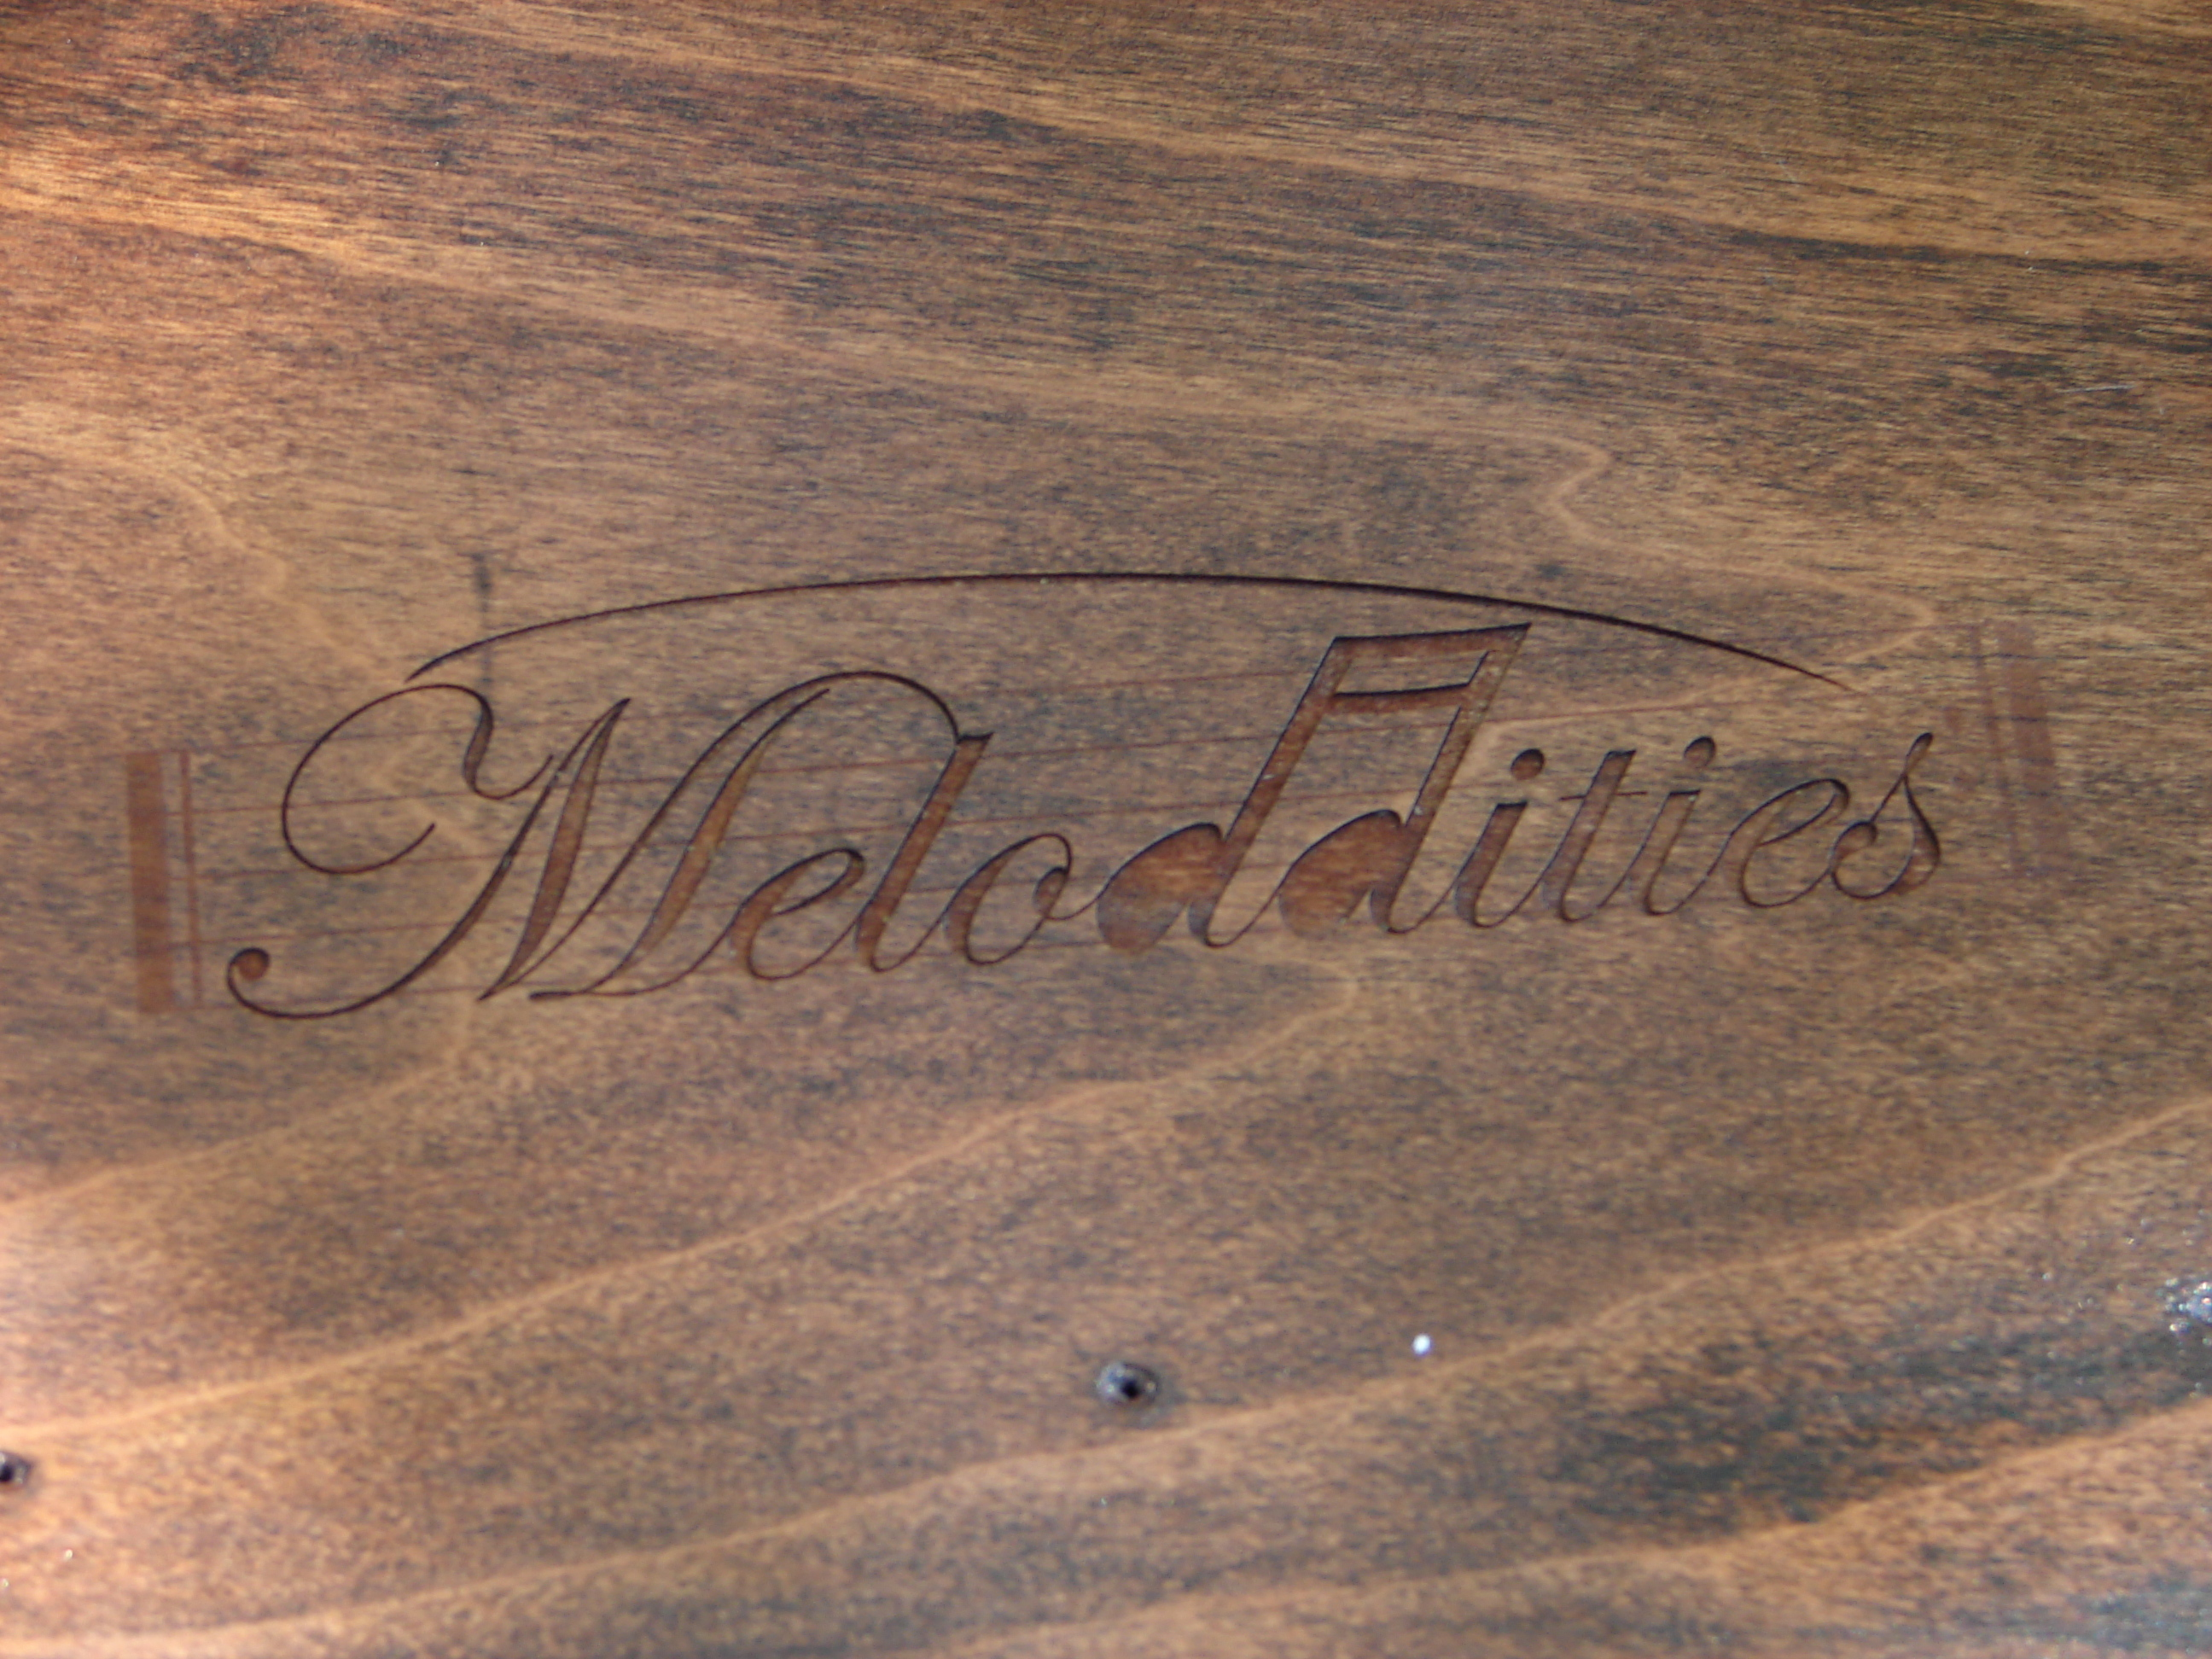 Laser Engraved Meloddities Logo